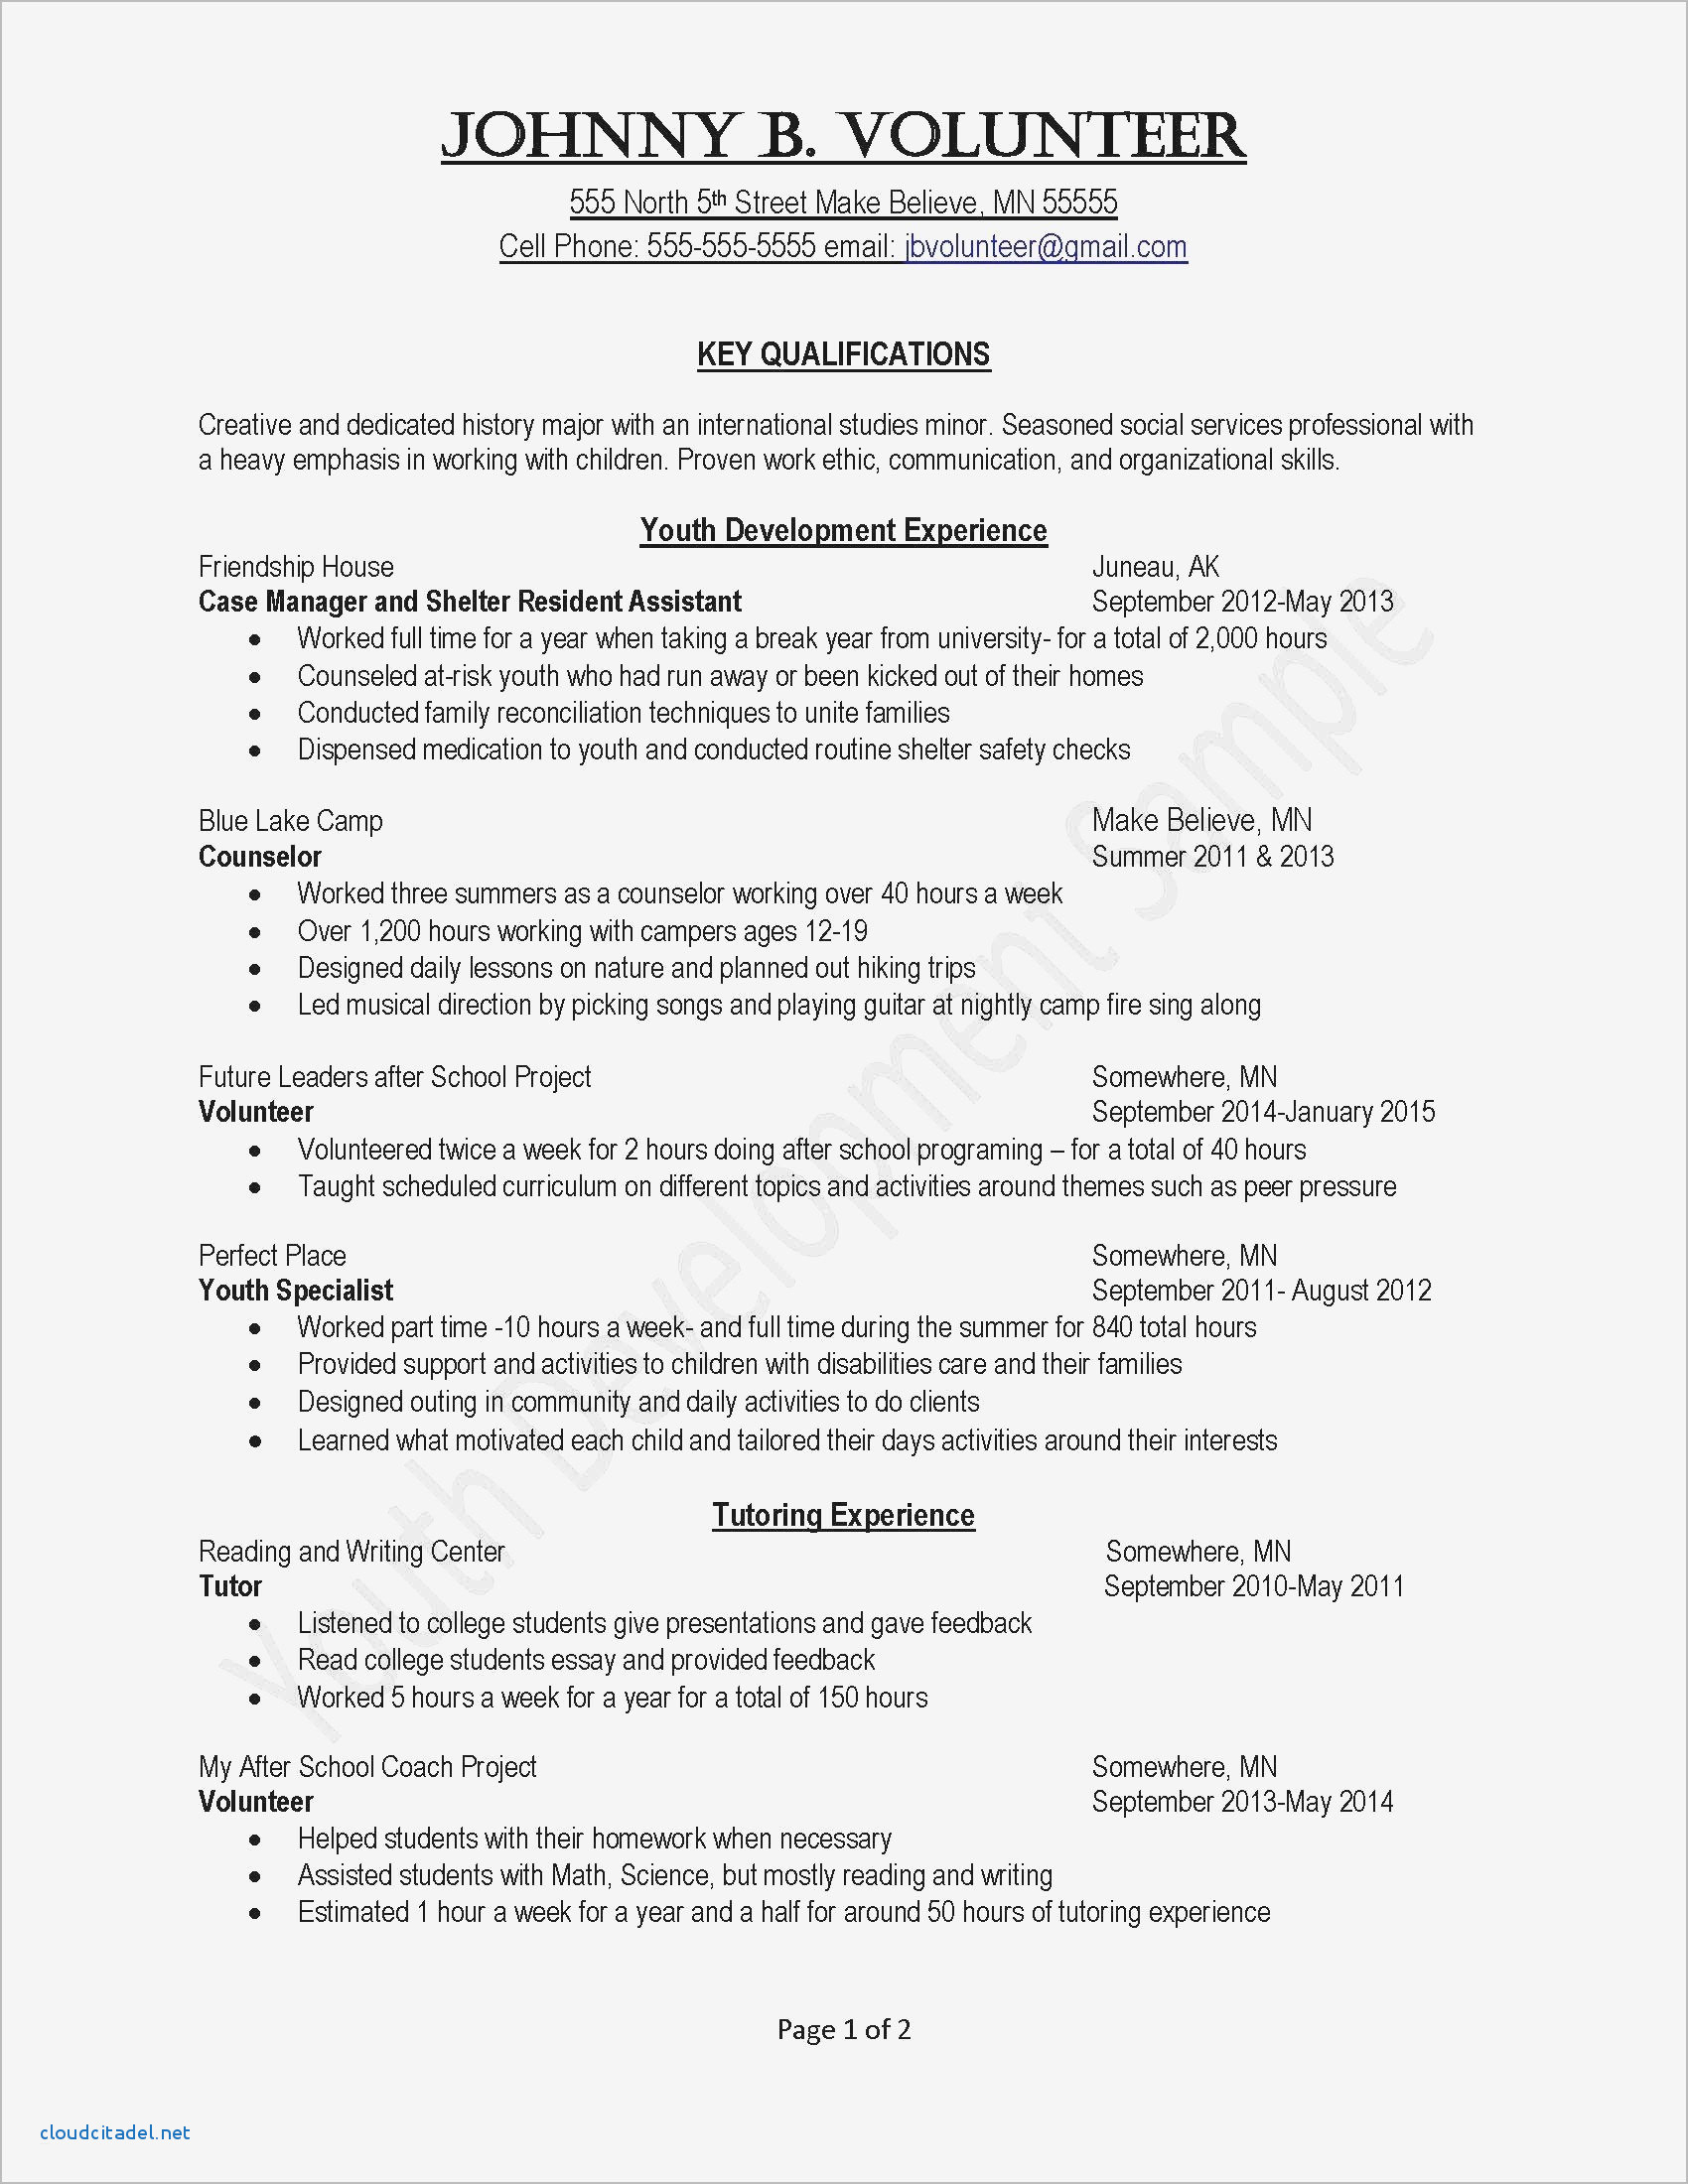 Usc Resume - Usc Cover Letter Awesome Best Cover Letter Samples for Resume Doc